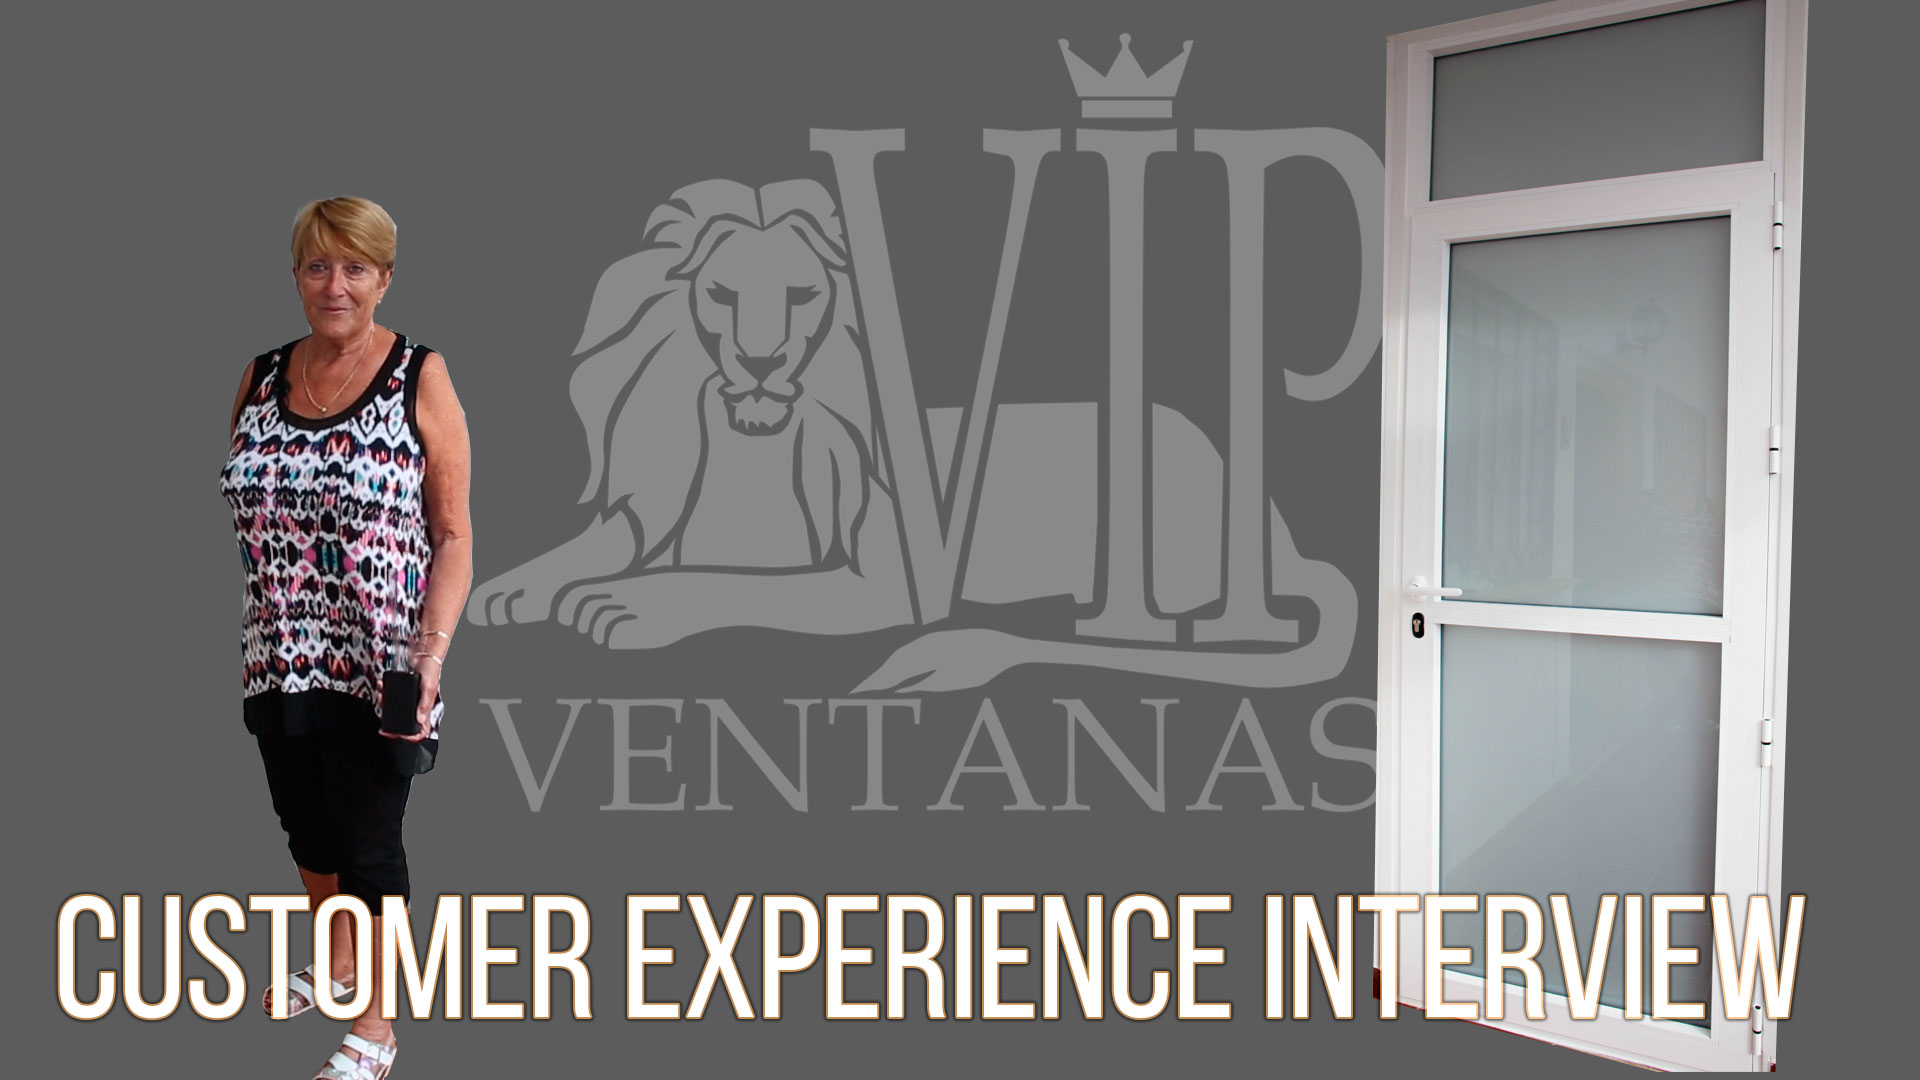 Customer Experience Interview. Ventanas VIP 2